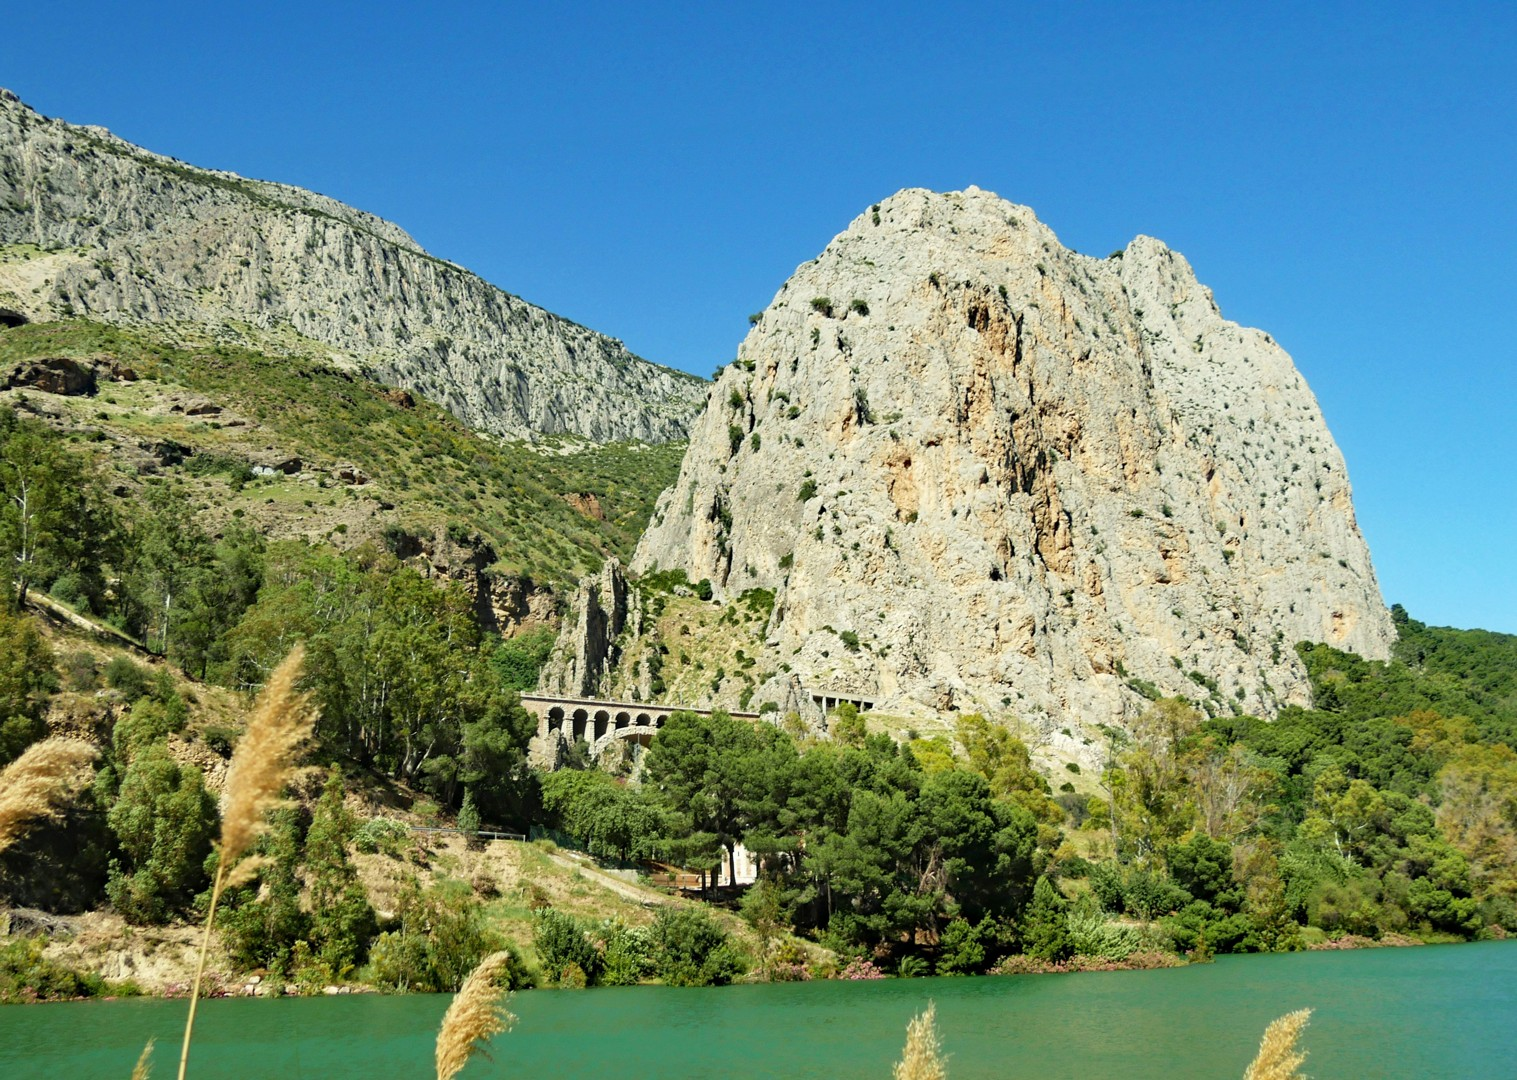 el-chorro-lake-road-cycling-trip.jpg - NEW! Spain - Basque Country to Andalucia - 21 Day - Road Cycling